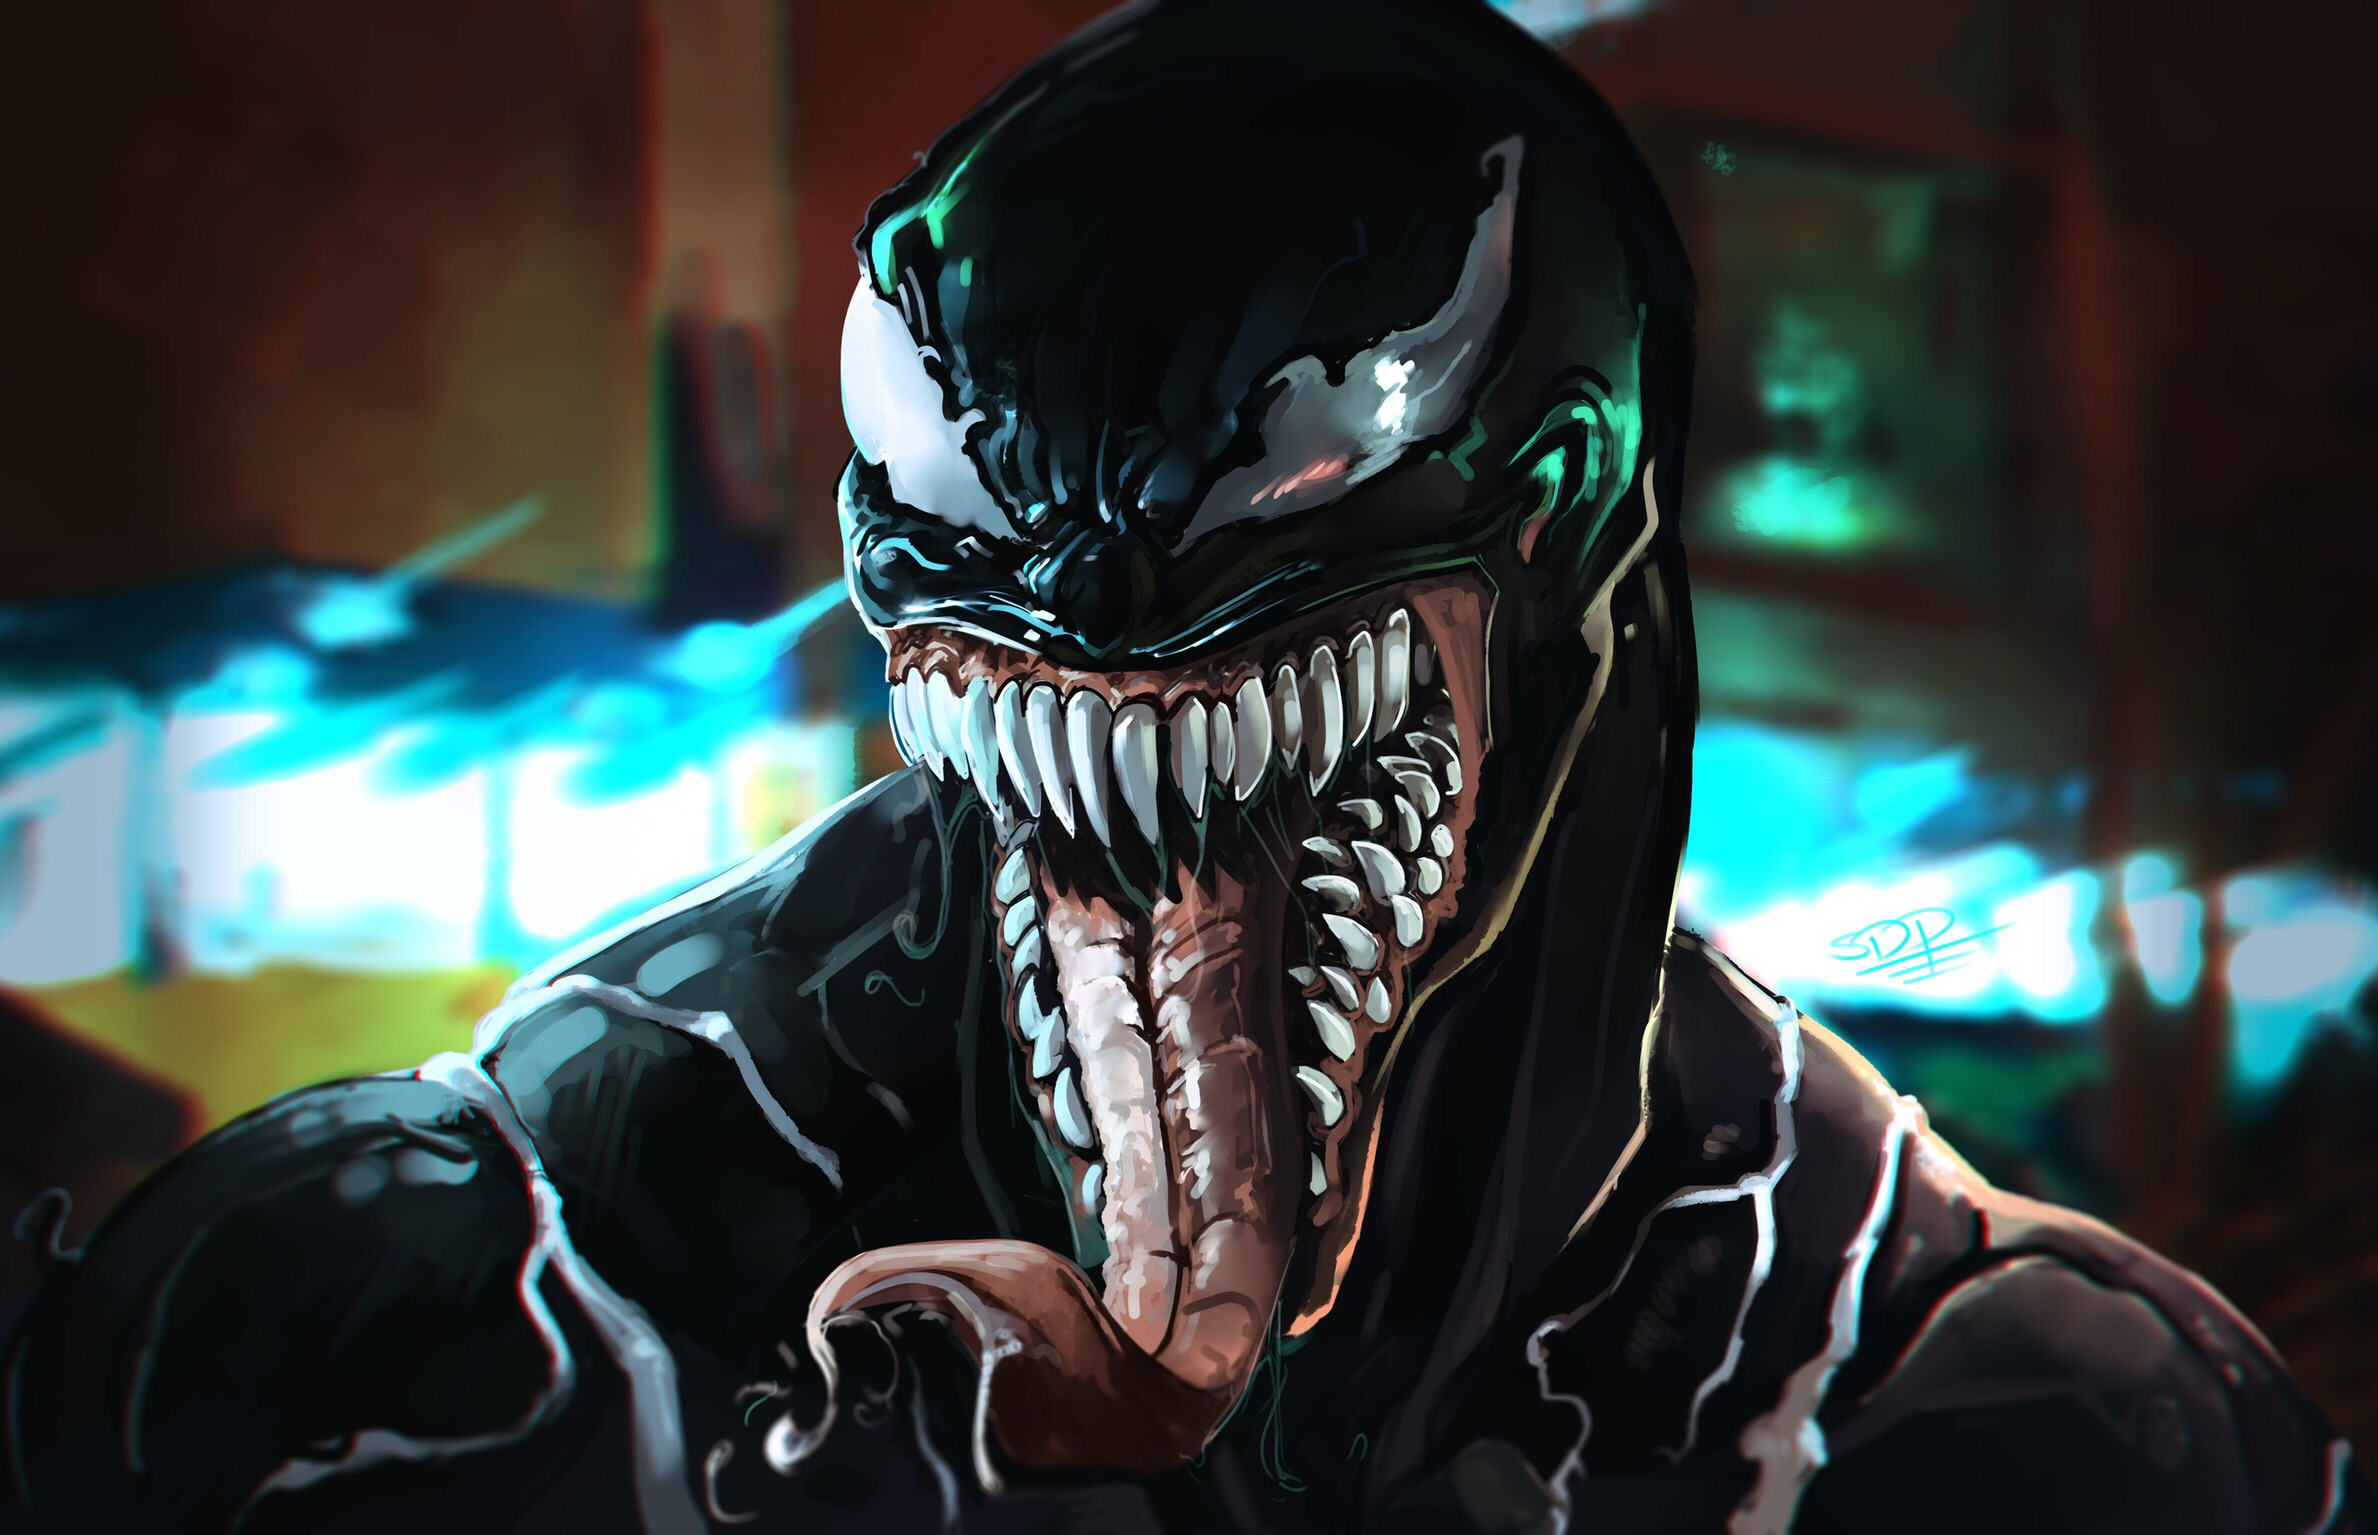 Wallpaper 4k Venom Movie Art 4k Spiderman Infinity War Wallpapers